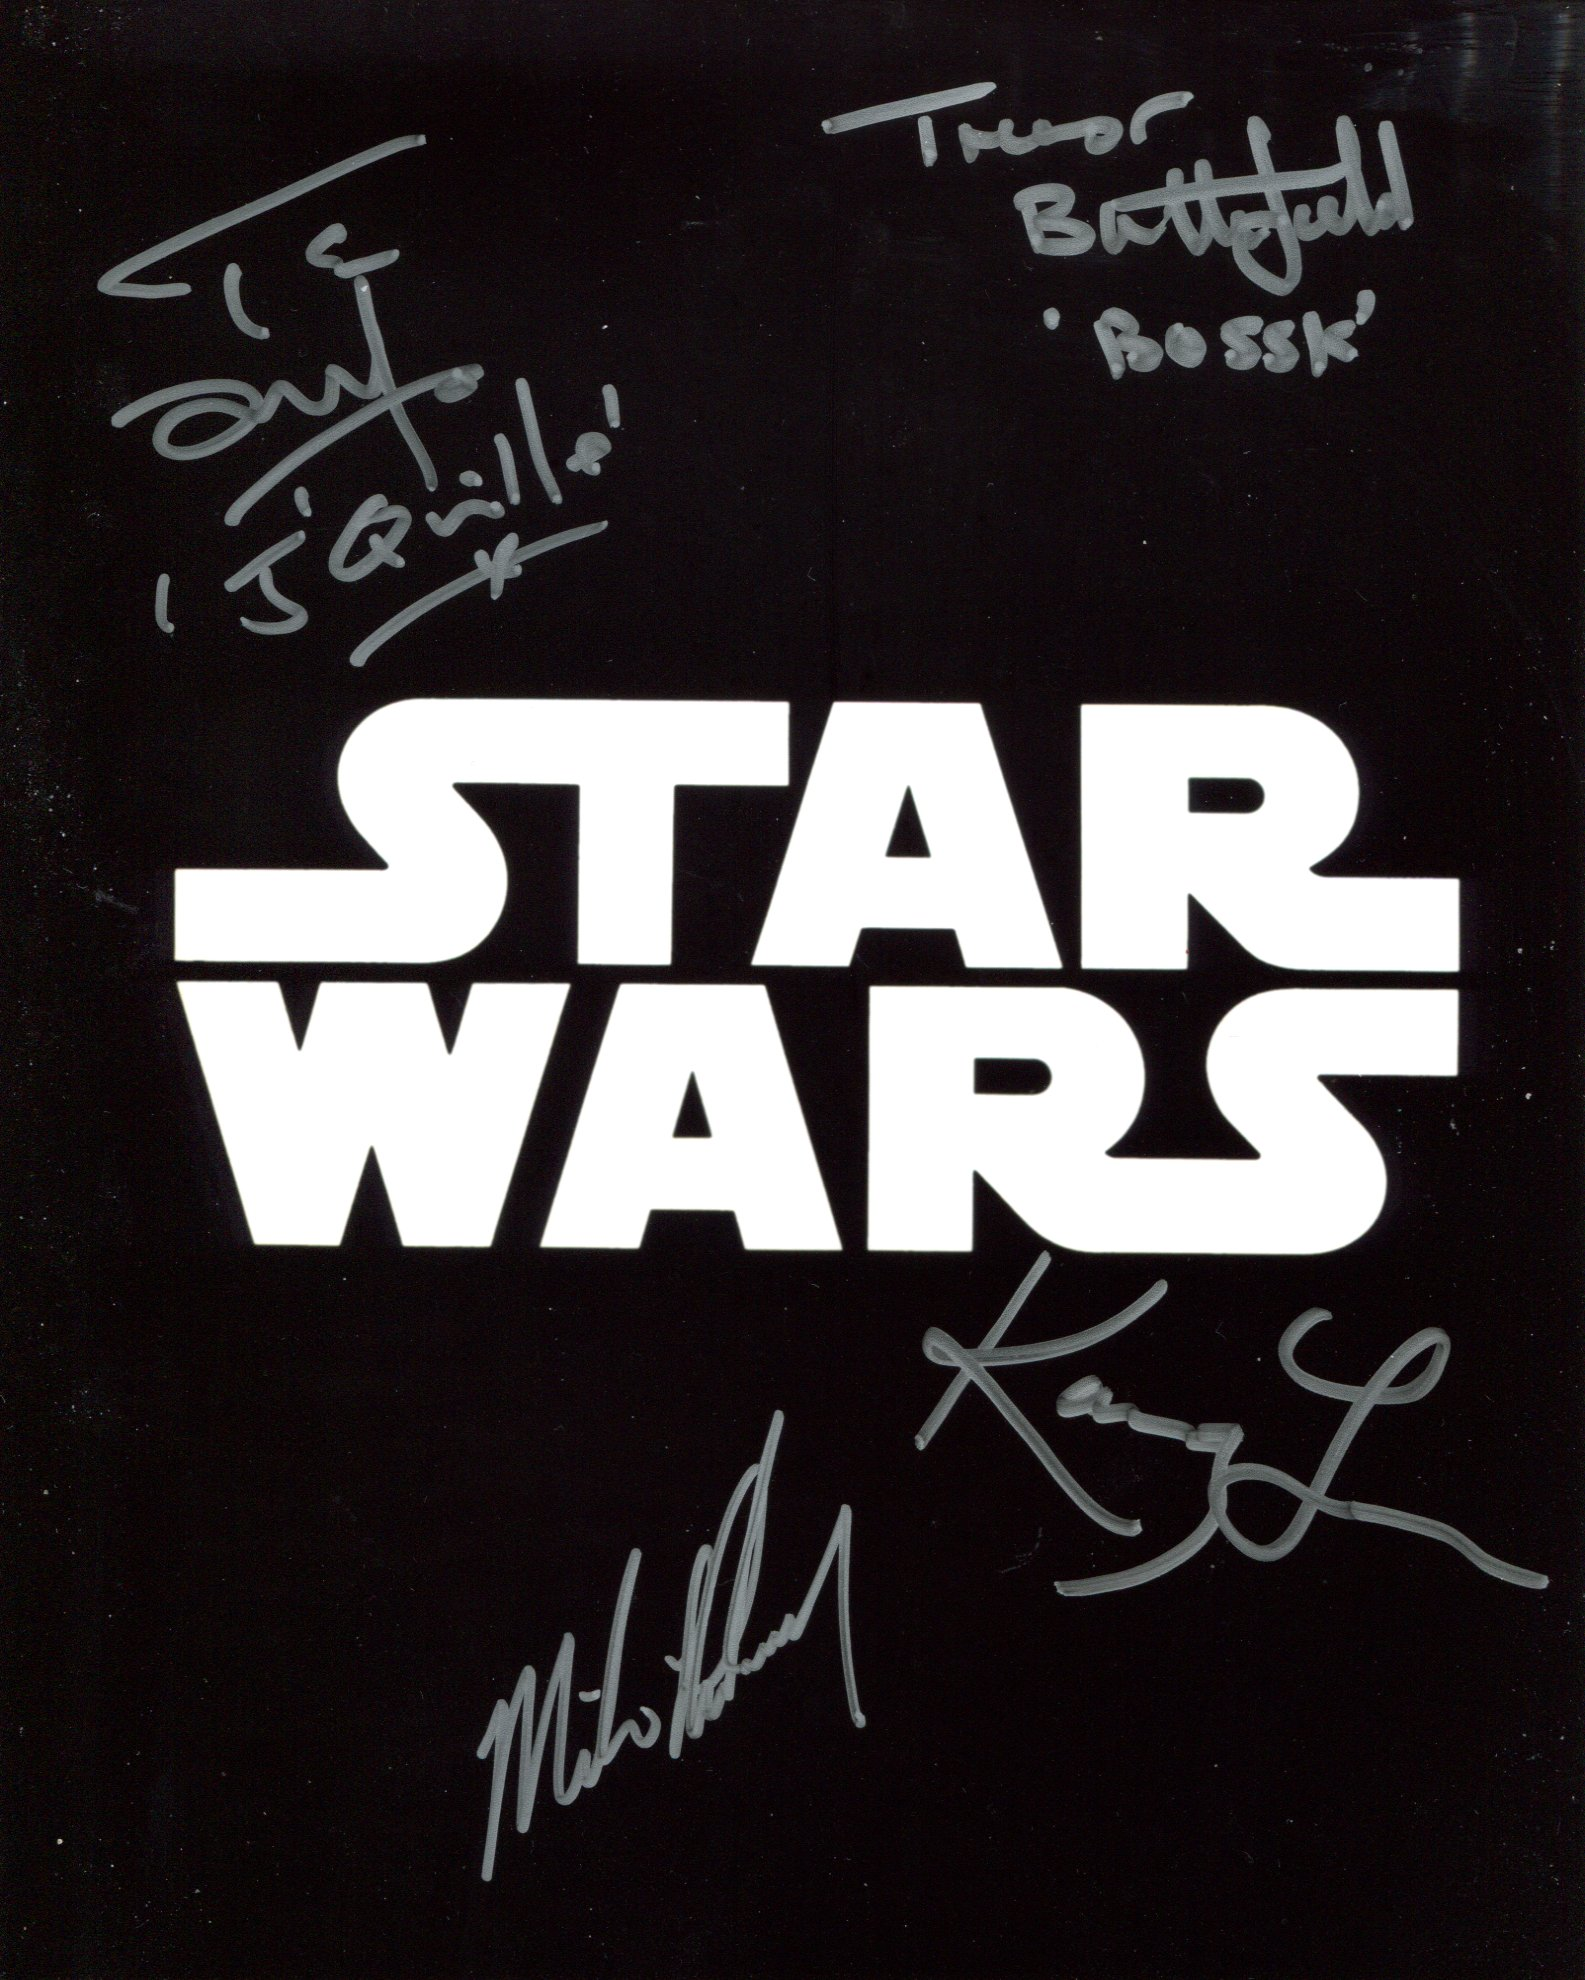 Star Wars multi-signed 8x10 movie photo signed by FOUR actors in Trever Butterfield, Michael